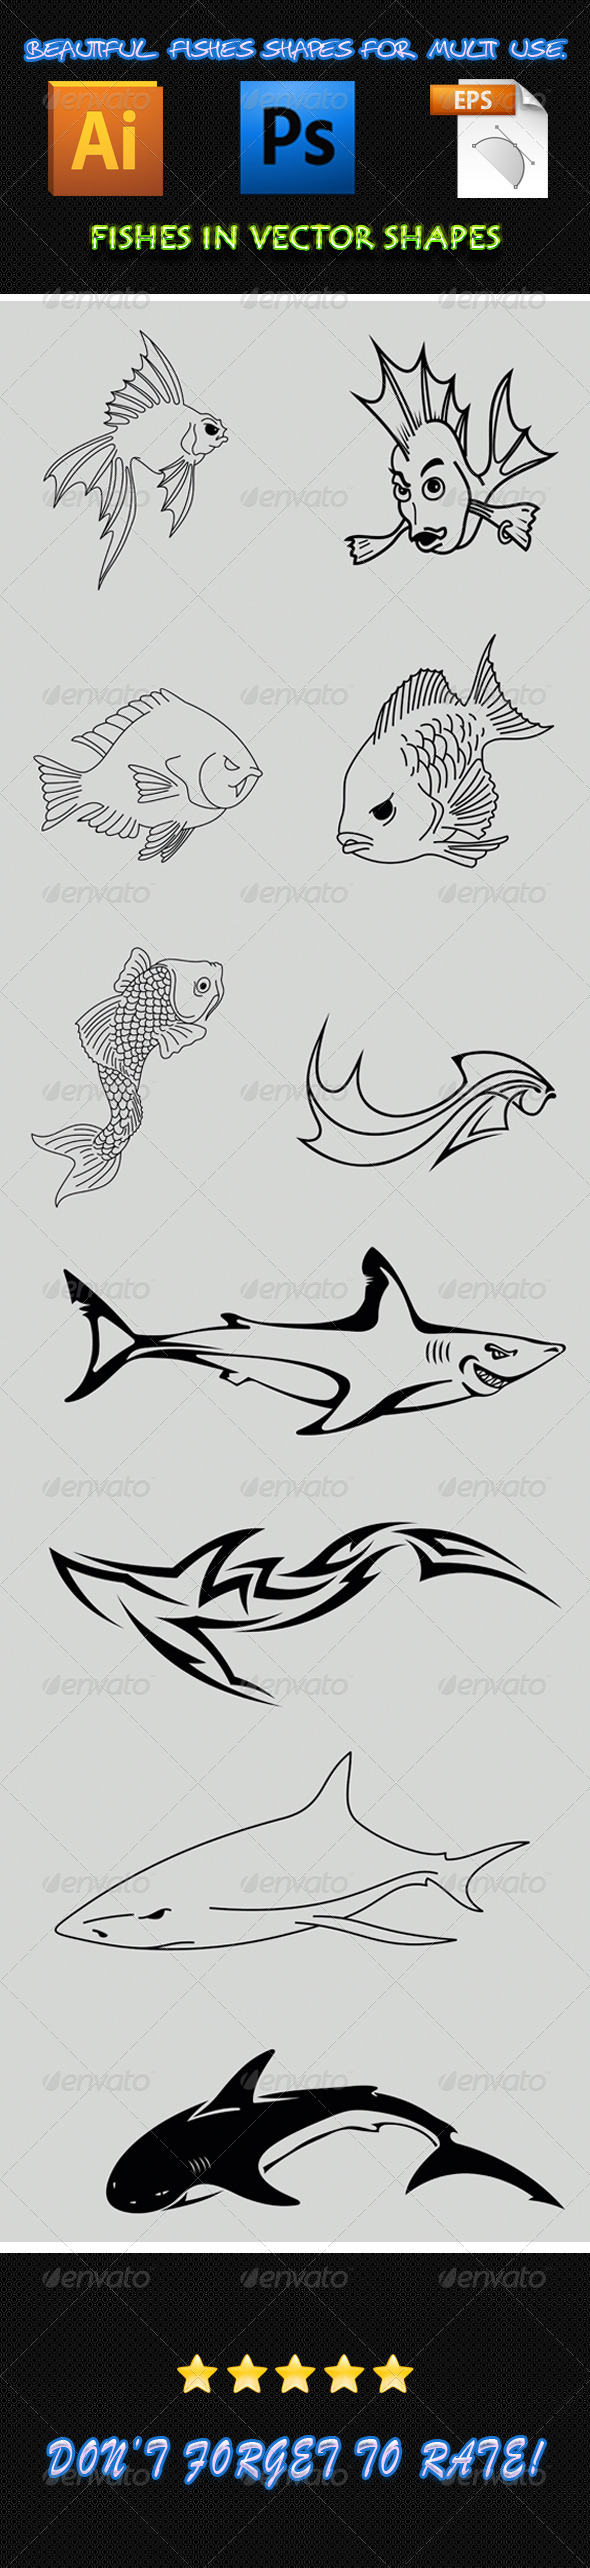 Fish Shapes 02 - Animals Characters